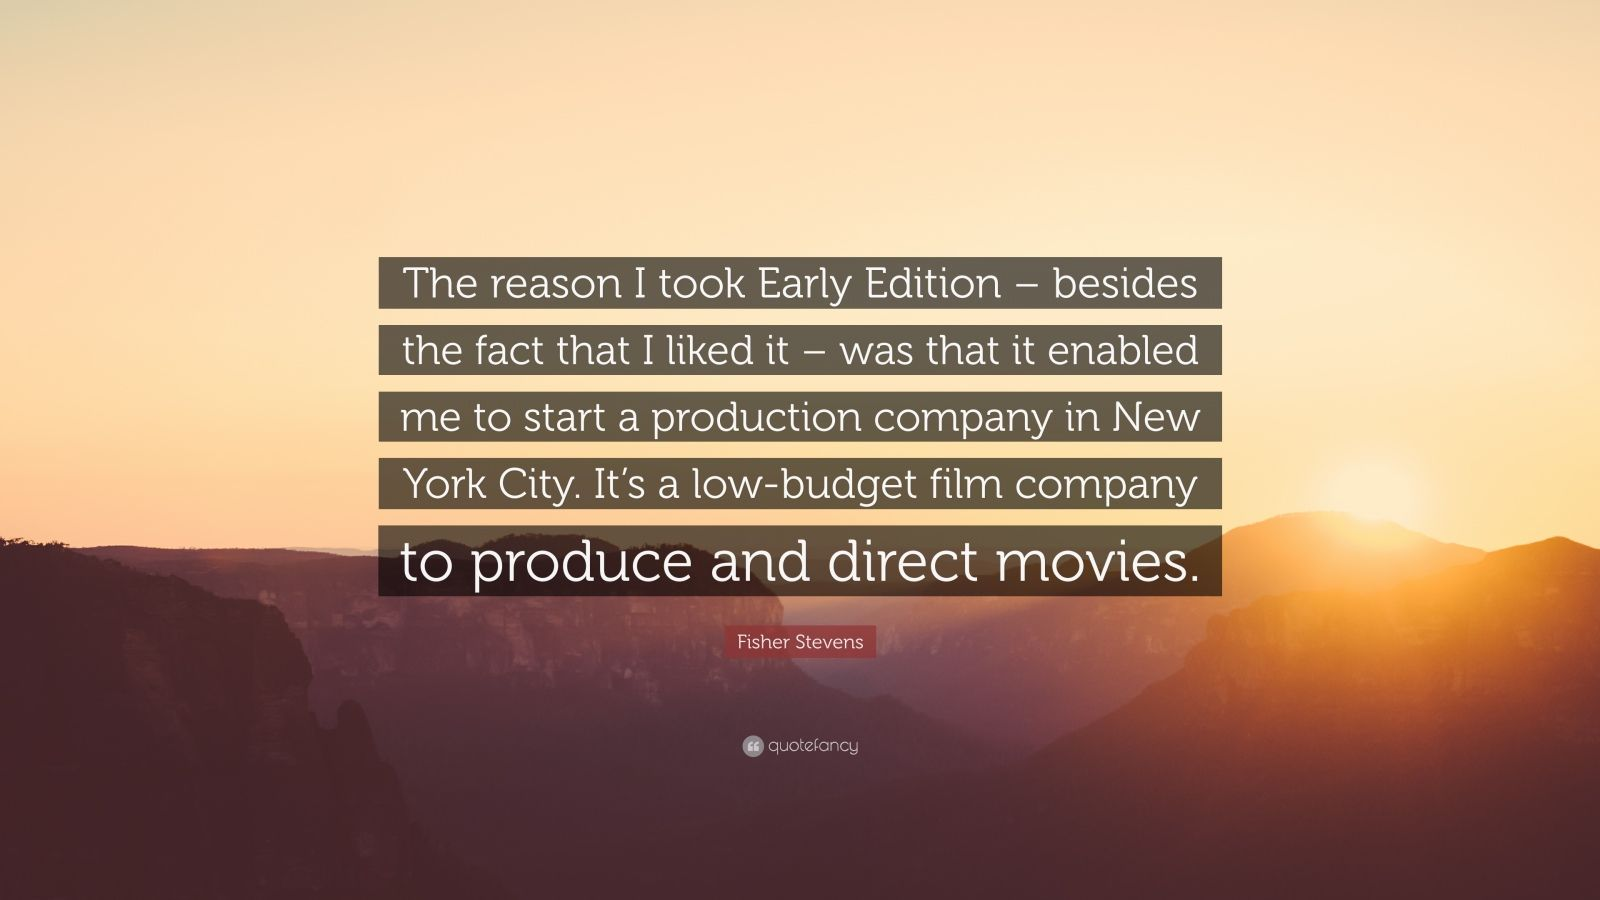 """Fisher Stevens Quote: """"The reason I took Early Edition – besides the fact that I liked it – was that it enabled me to start a production company in New York City. It's a low-budget film company to produce and direct movies."""""""